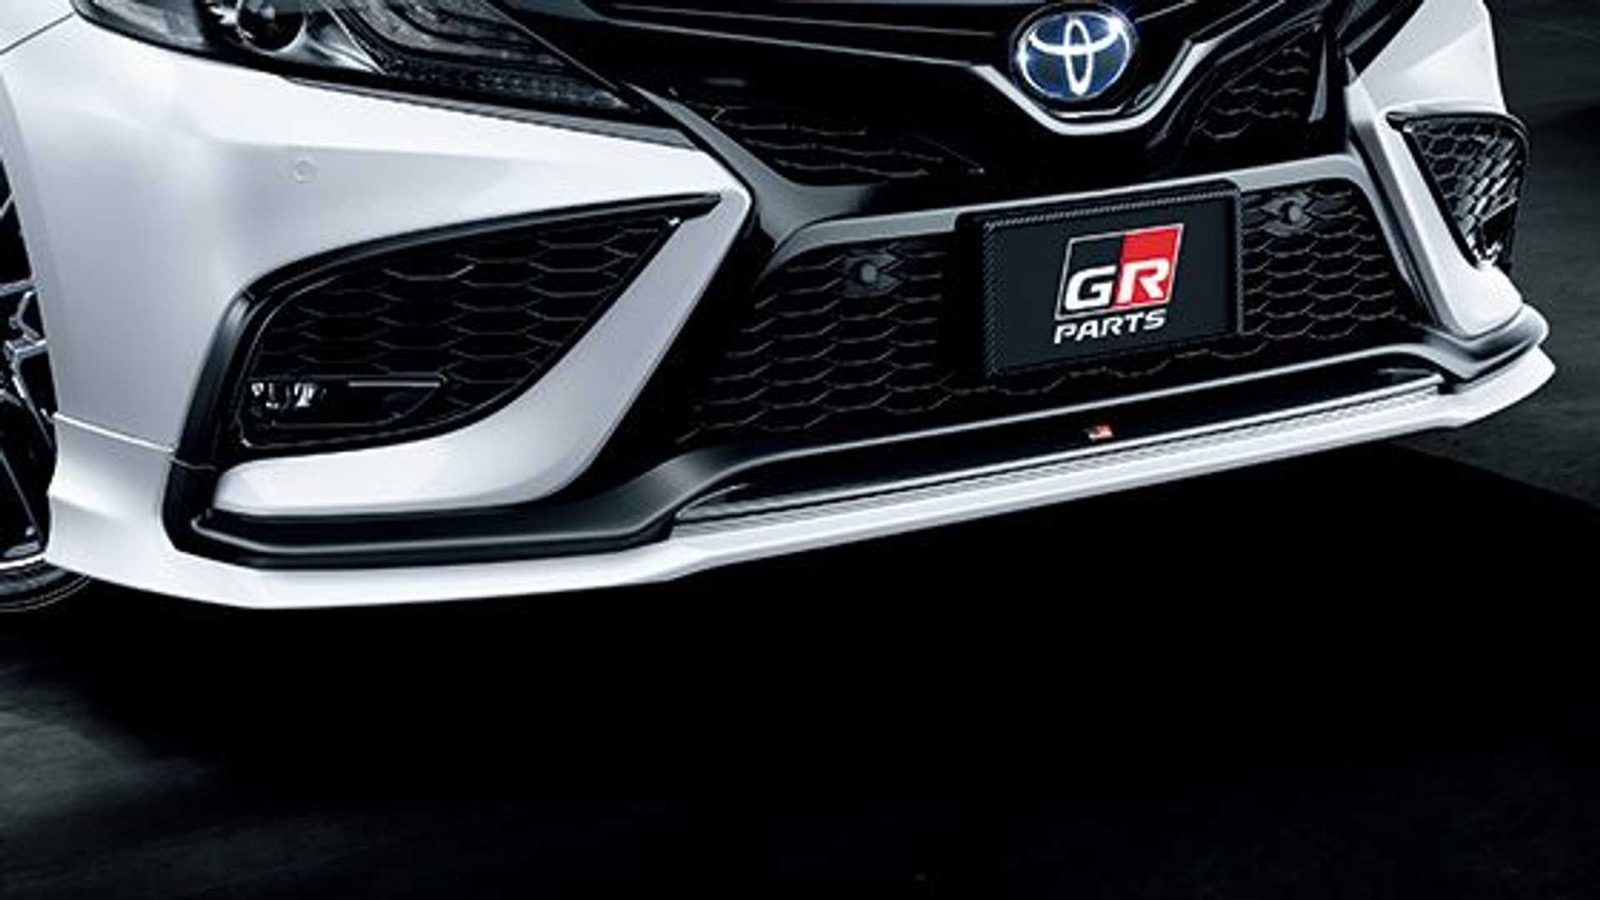 Toyota Camry GR Parts